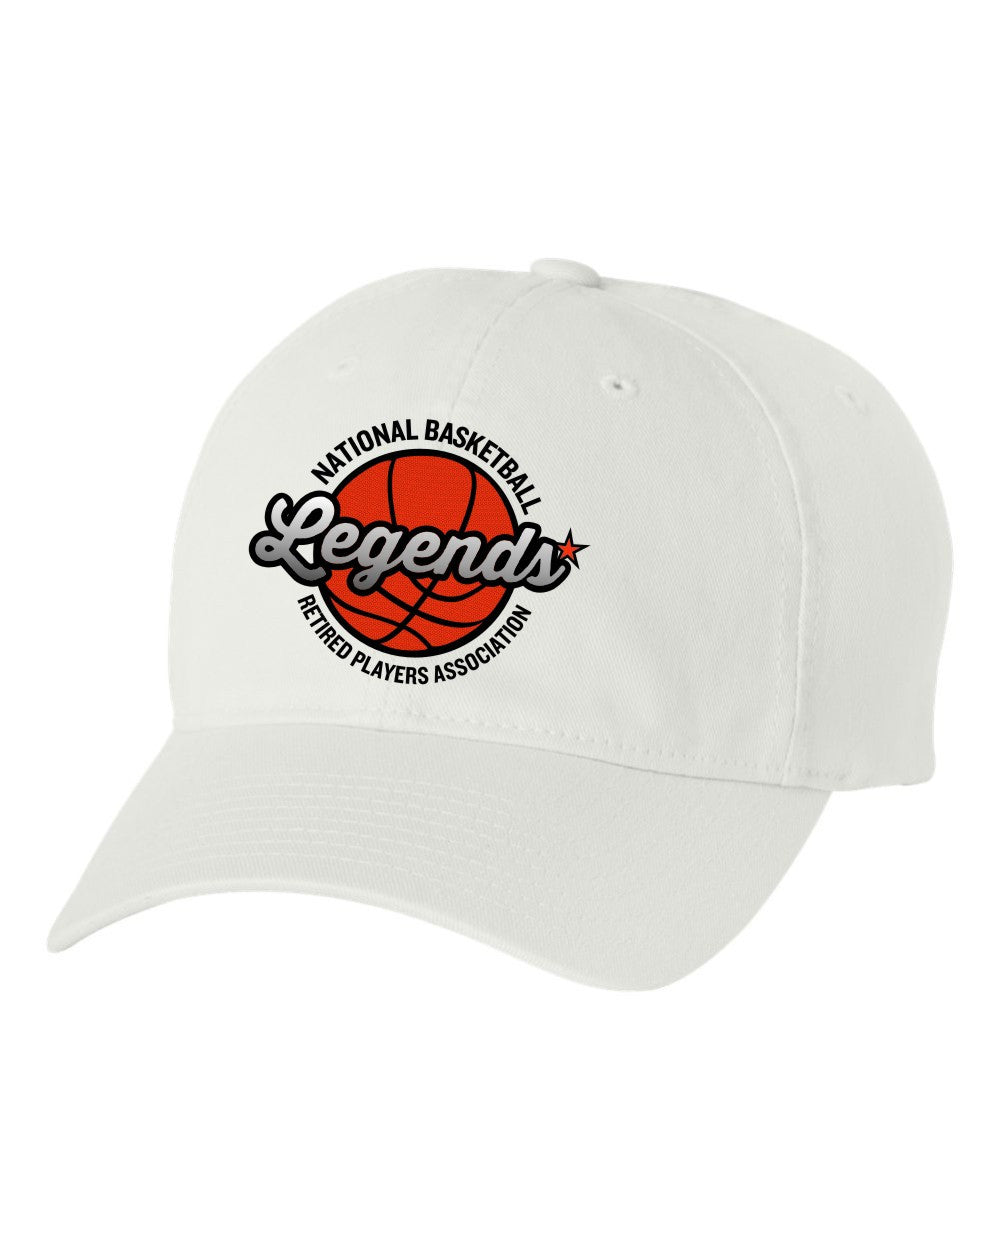 Legends White Cap